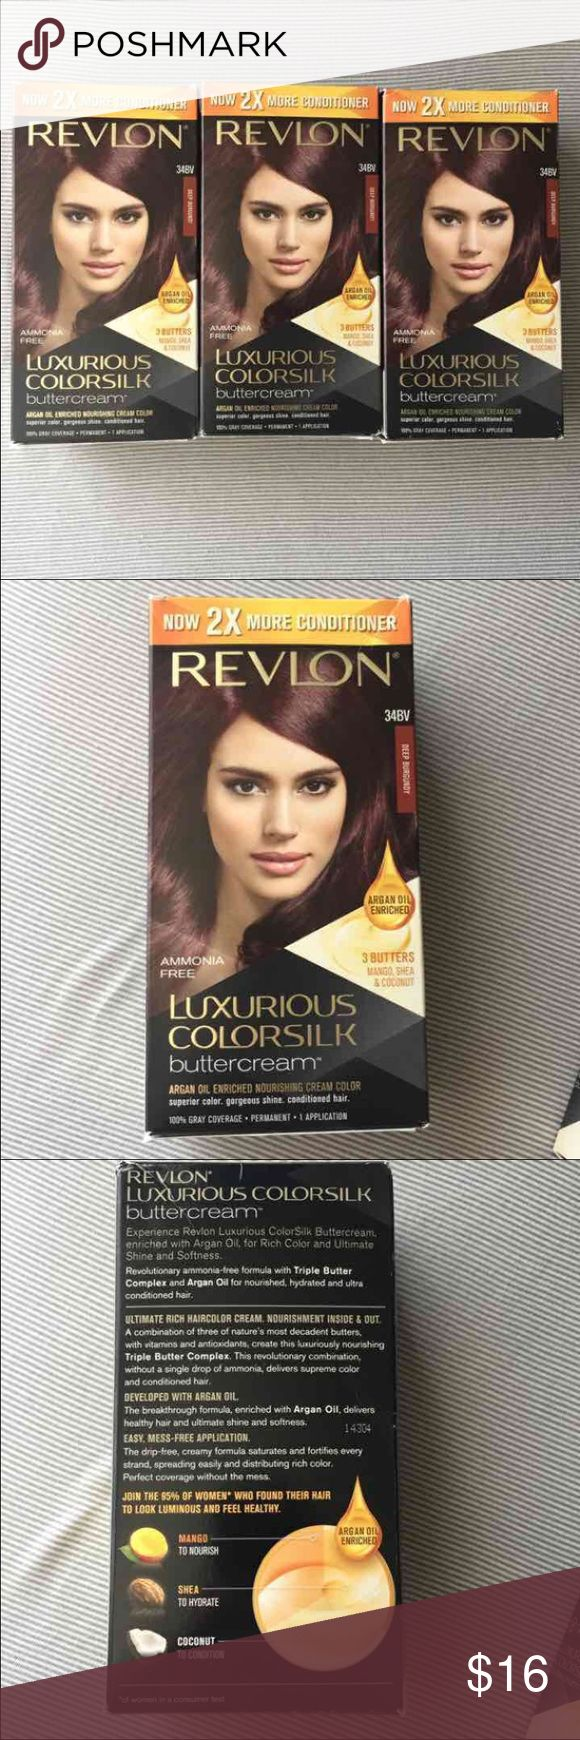 Revlon deep burgundy Hair Dye color Revlon Luxurious Colorsilk Buttercream Now with 2x more conditioner Ammonia free Argan oil mango shea & coconut 100% gray coverage Permanent  1 application  You get 3 boxes as shown, brand new See last picture to see how it changes blond light brown dark brown and black hair. Just purchased but decided not to use them. Revlon Other